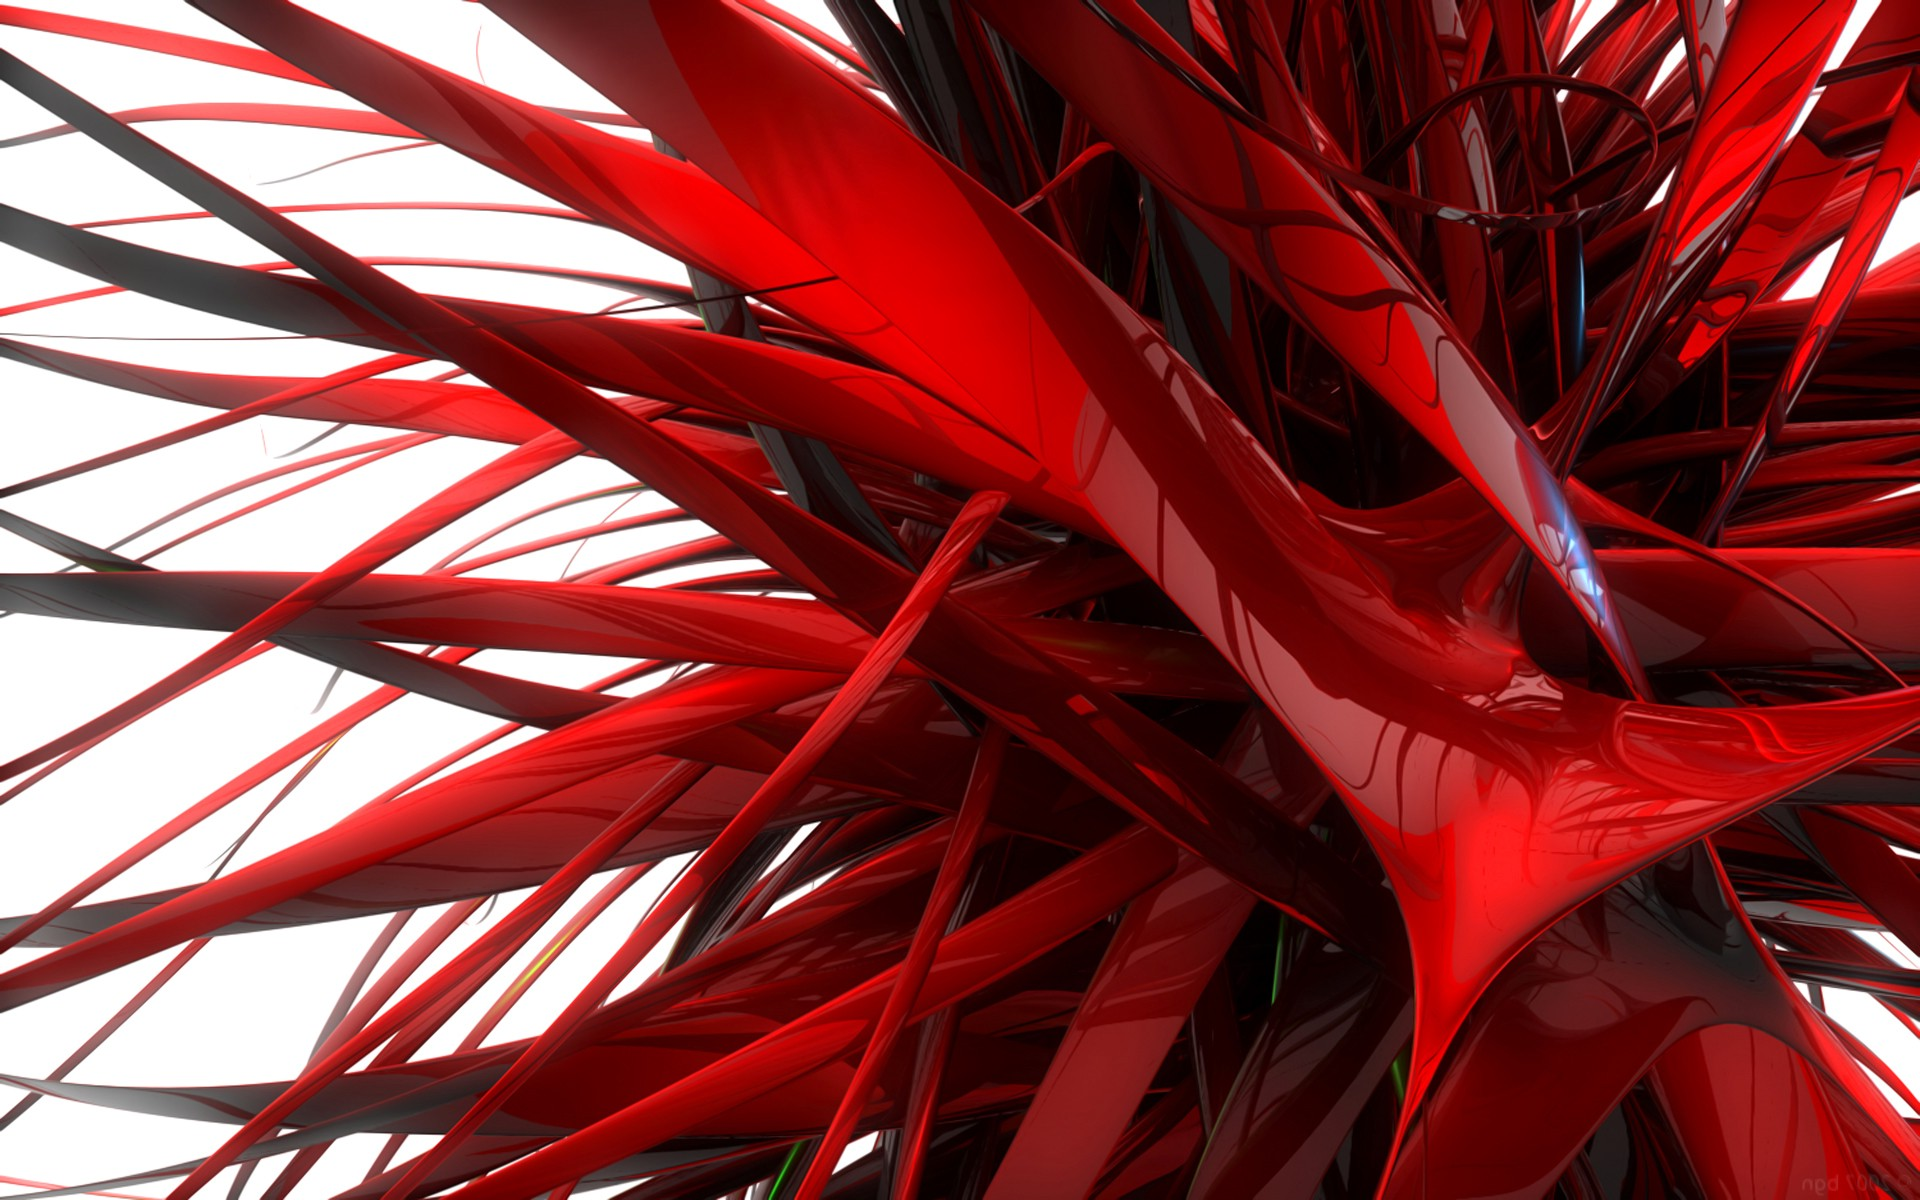 Sick Anime Wallpapers Digital Art Abstract 3d Red Render Reflection White